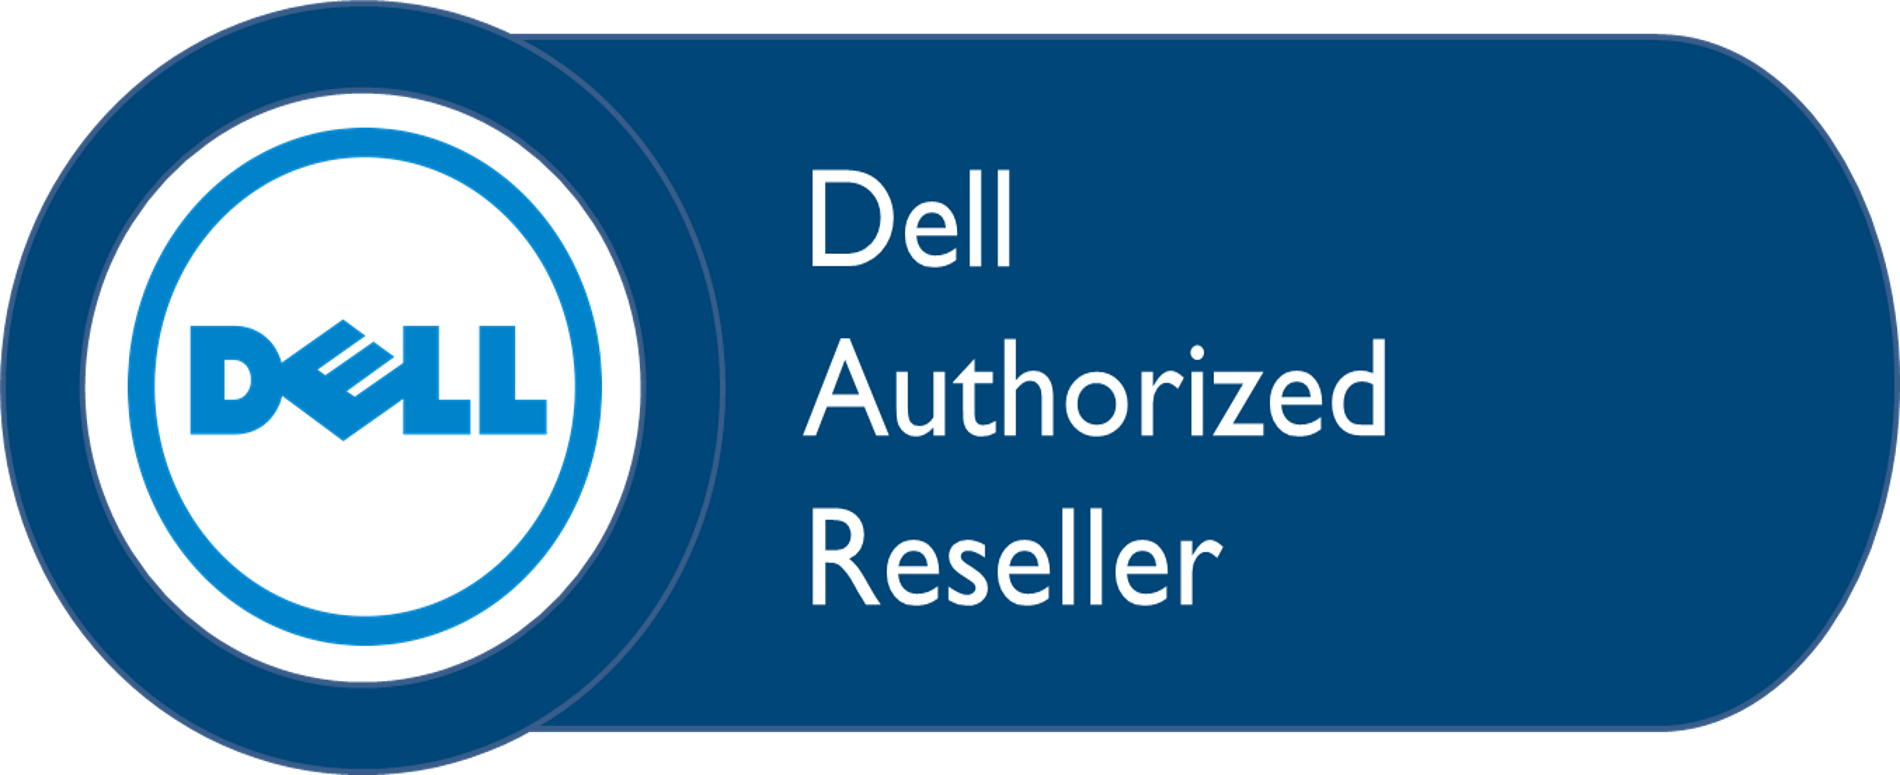 Authorized Reseller - партнер бренда Dell